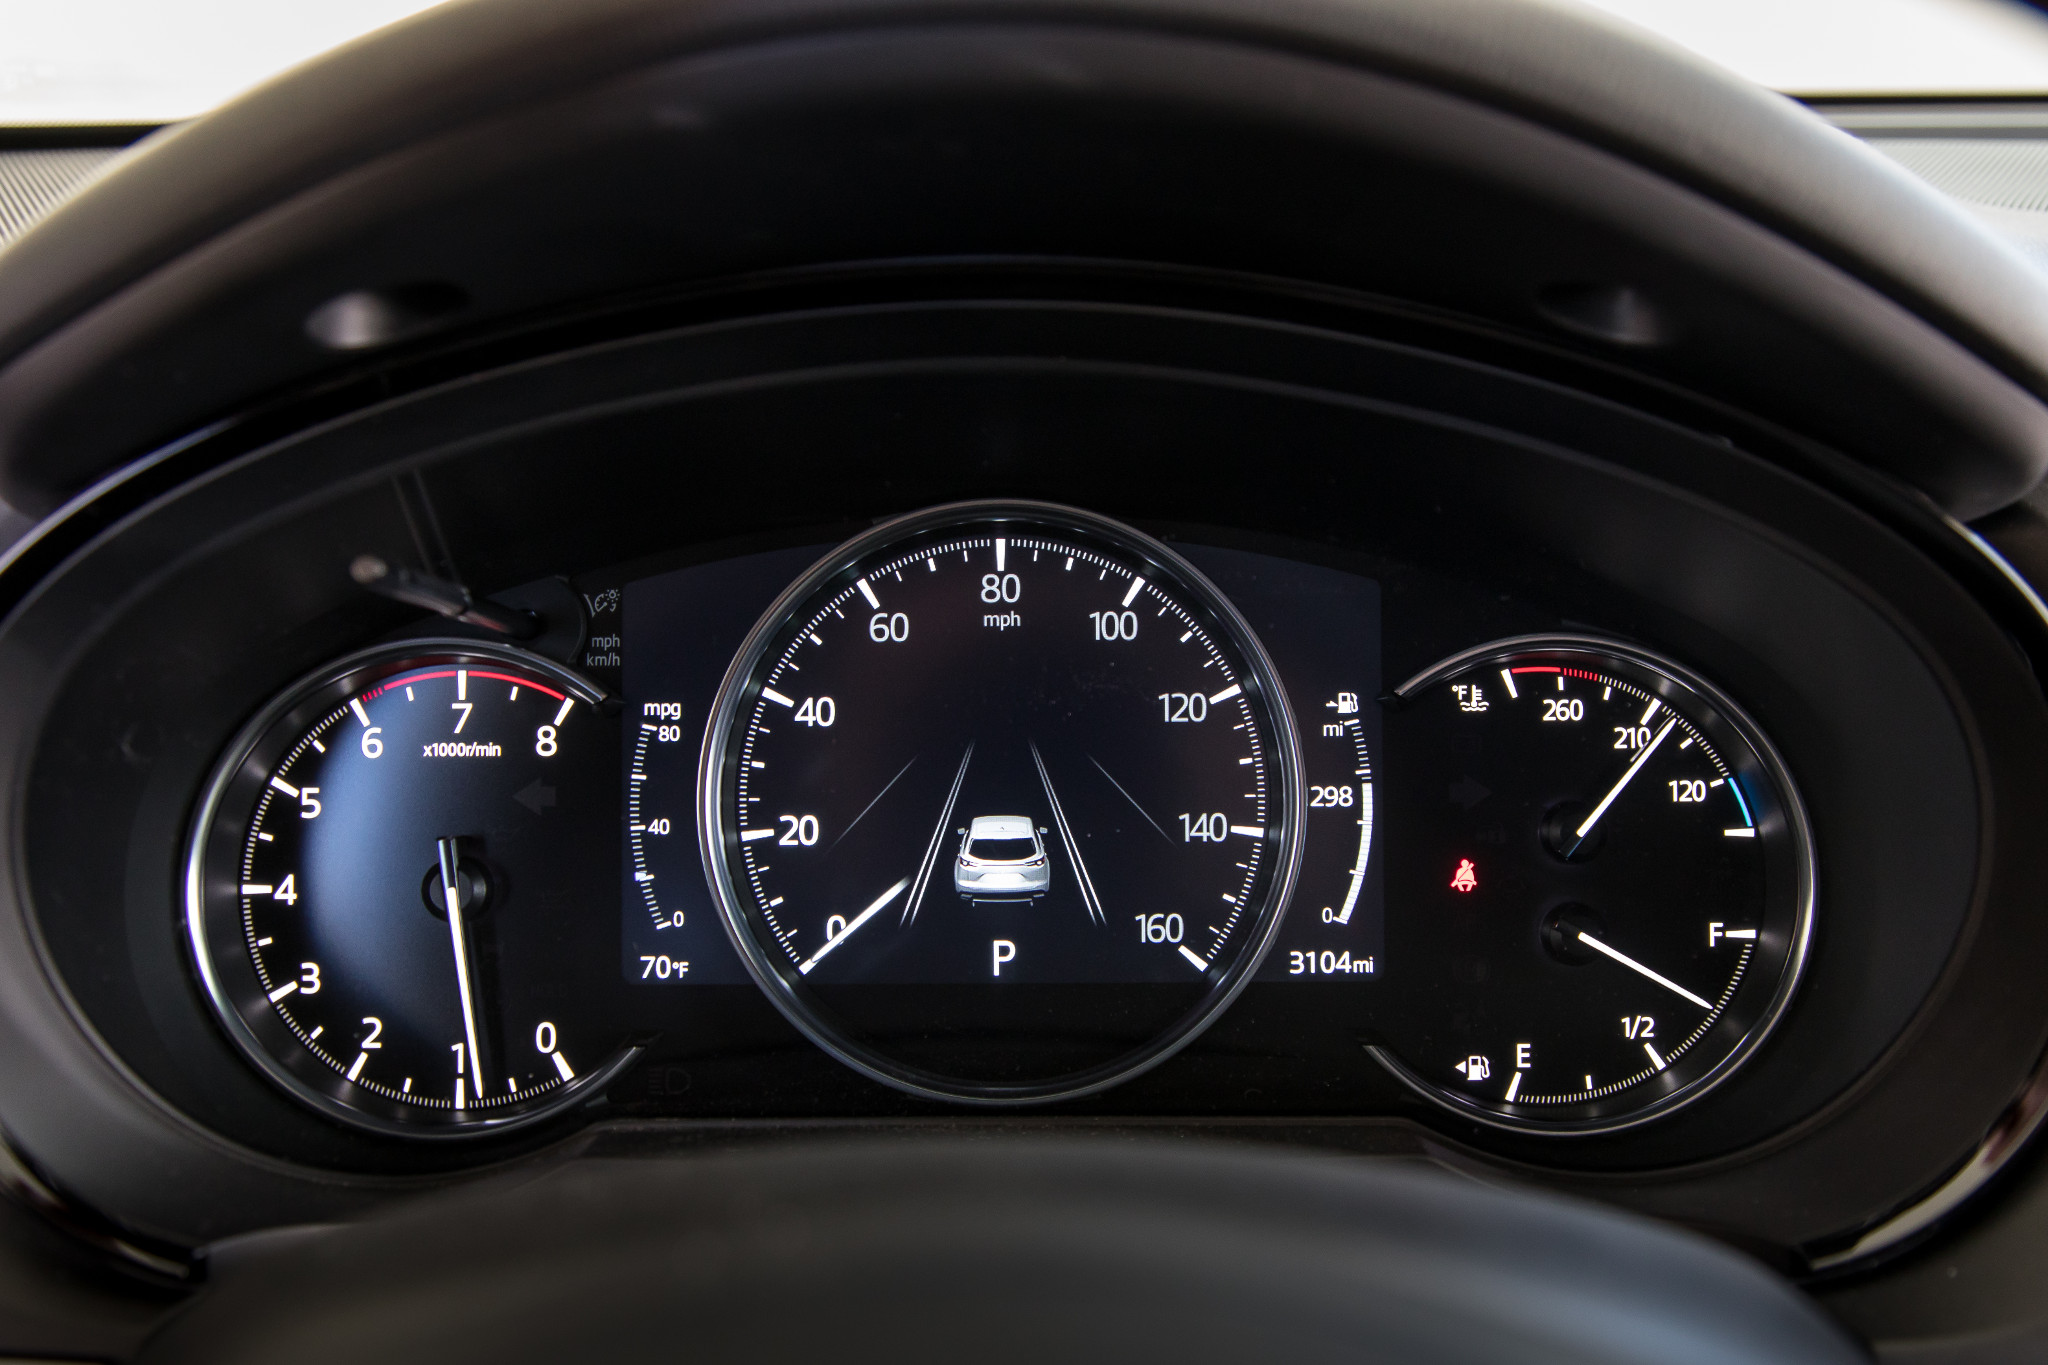 How To Paint Instrument Cluster